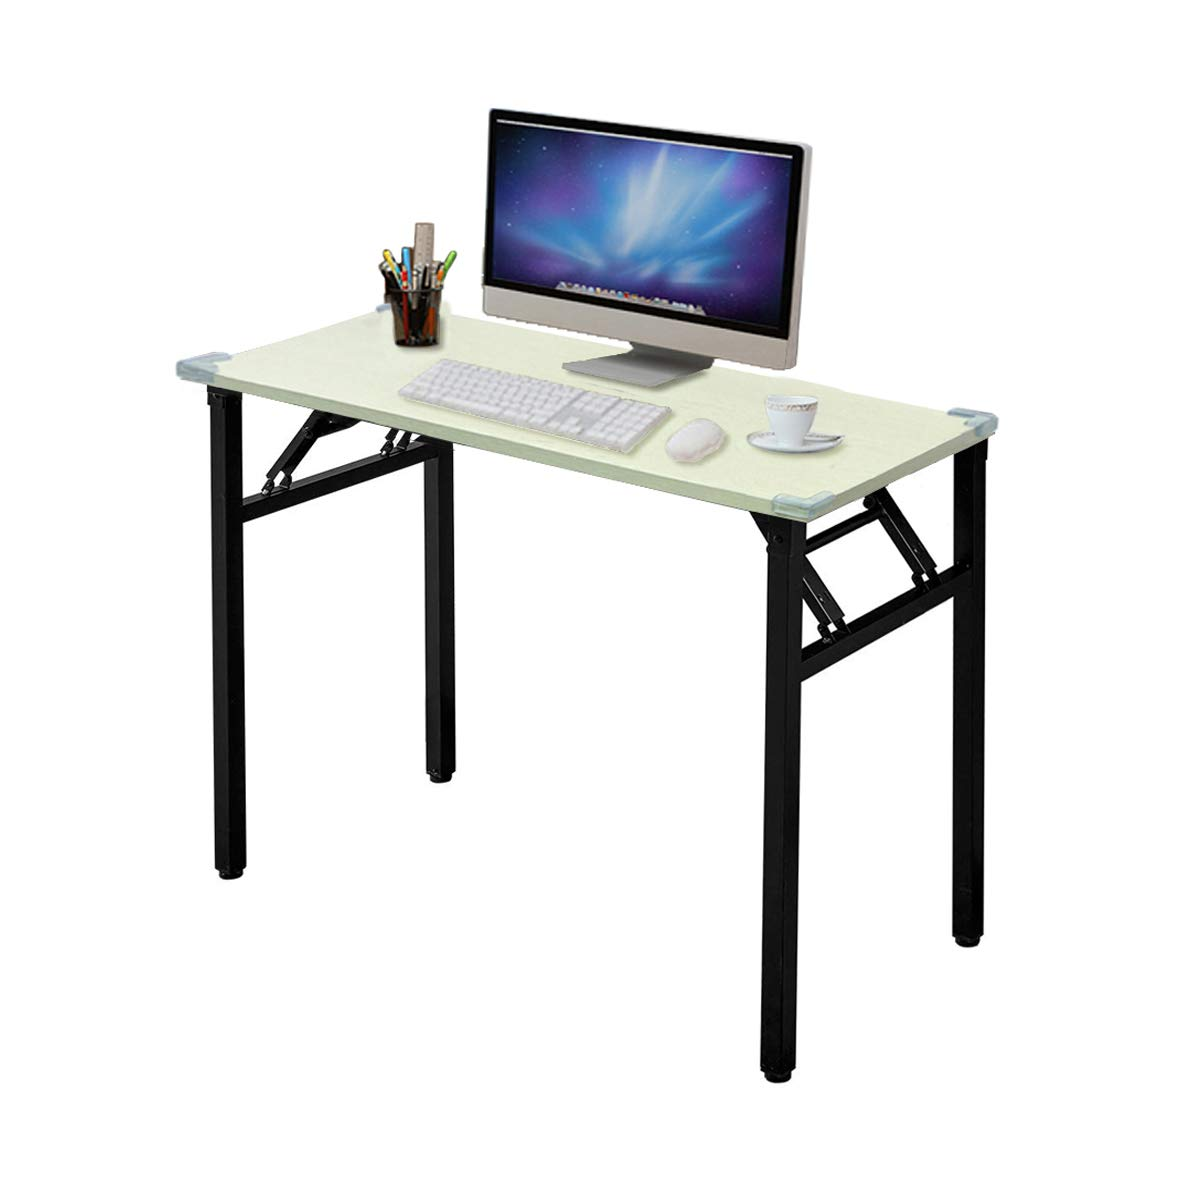 Exmott Foldable Computer Desk 31.5''x15.8''x29.5''(L x W x H) Home and Office Study Writing Desk Four Corner Protection Easy Storage and No Tools Required for Set Up(White Oak, 31.5'')